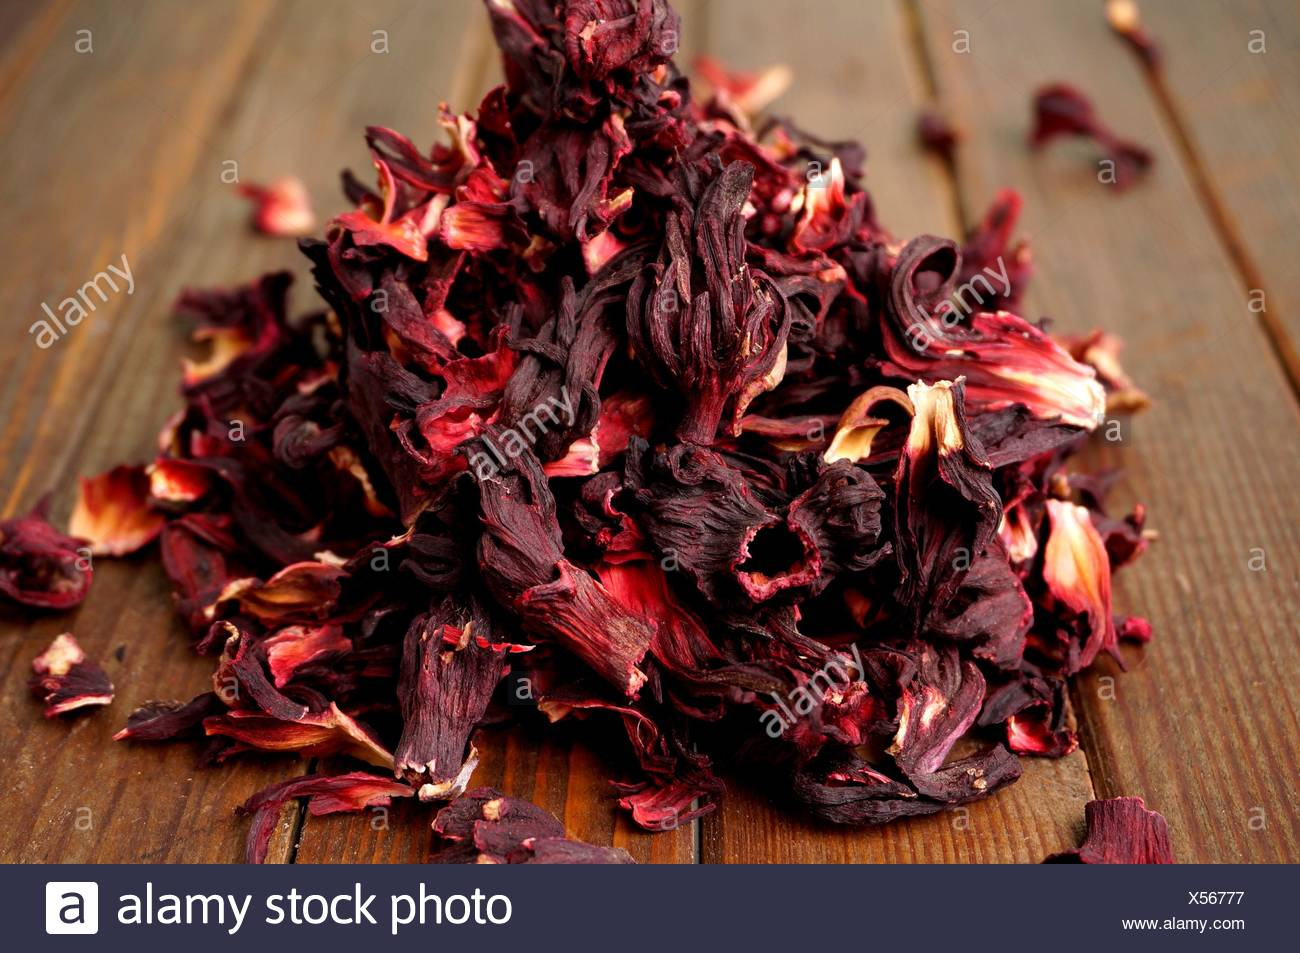 Dried Hibiscus Flower Stock Photos Dried Hibiscus Flower Stock